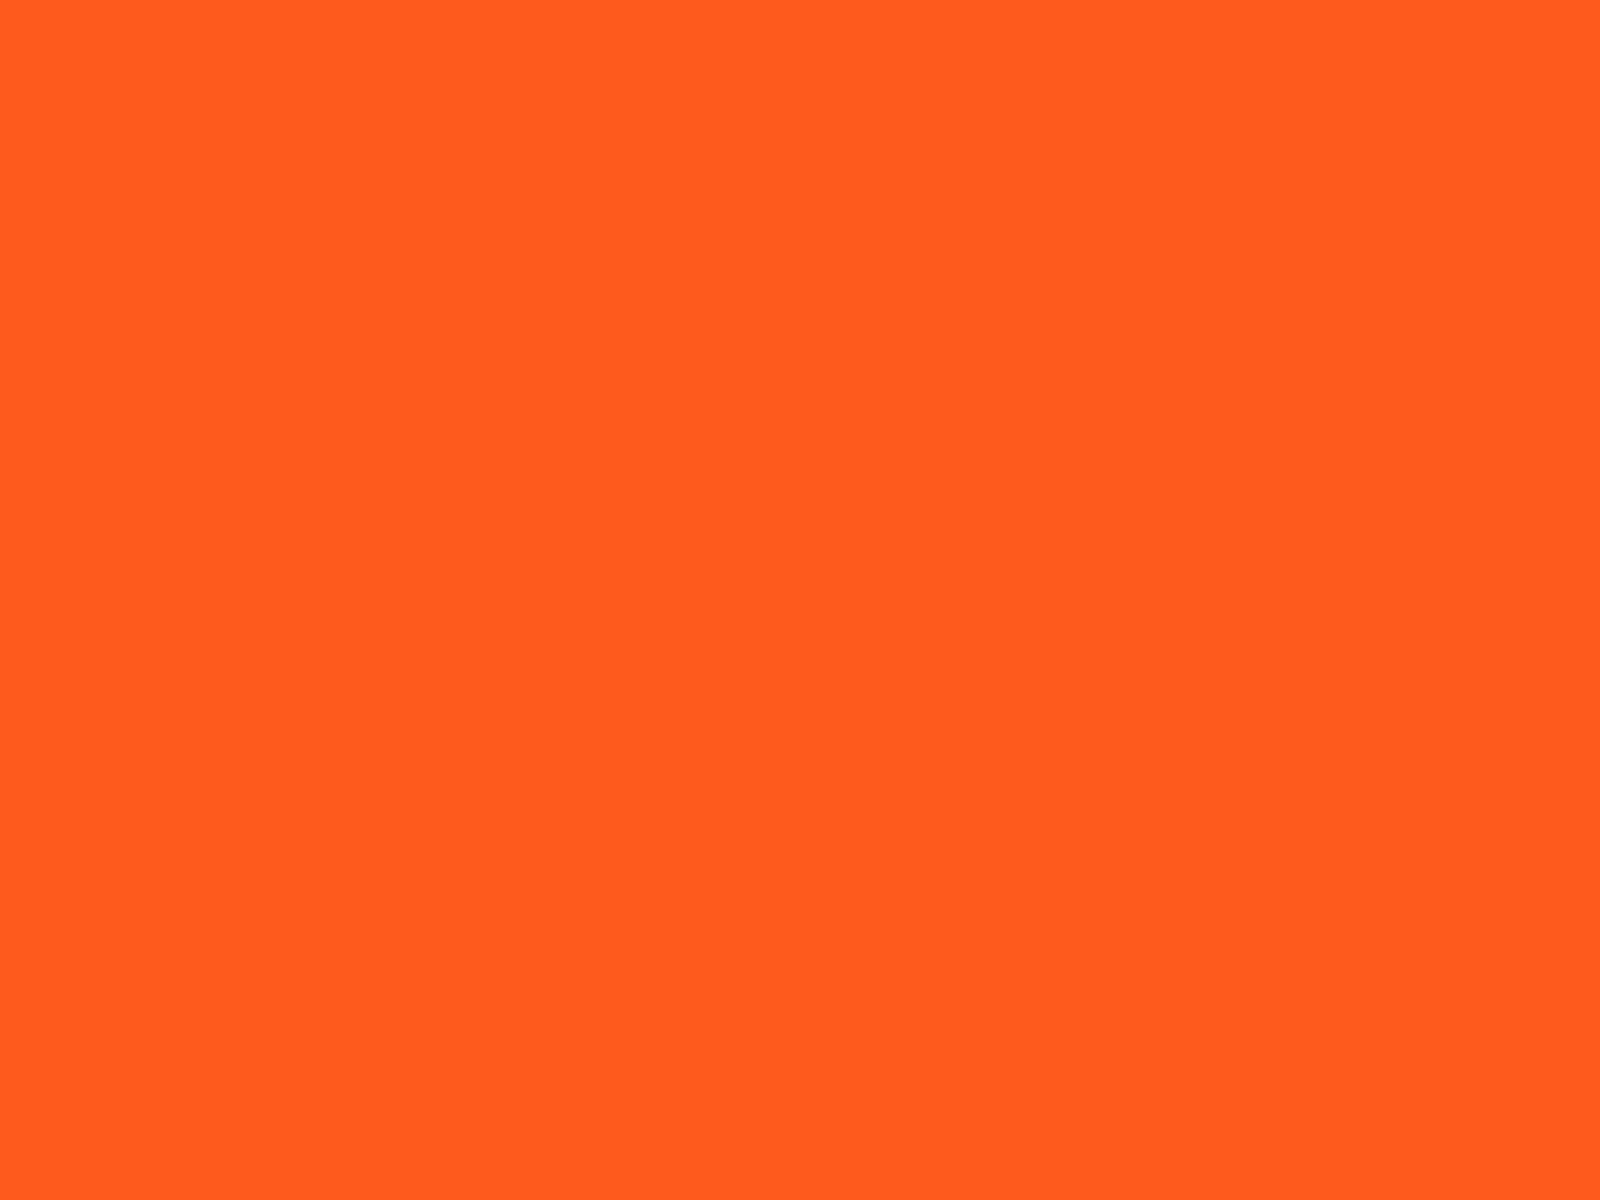 1600x1200 Giants Orange Solid Color Background